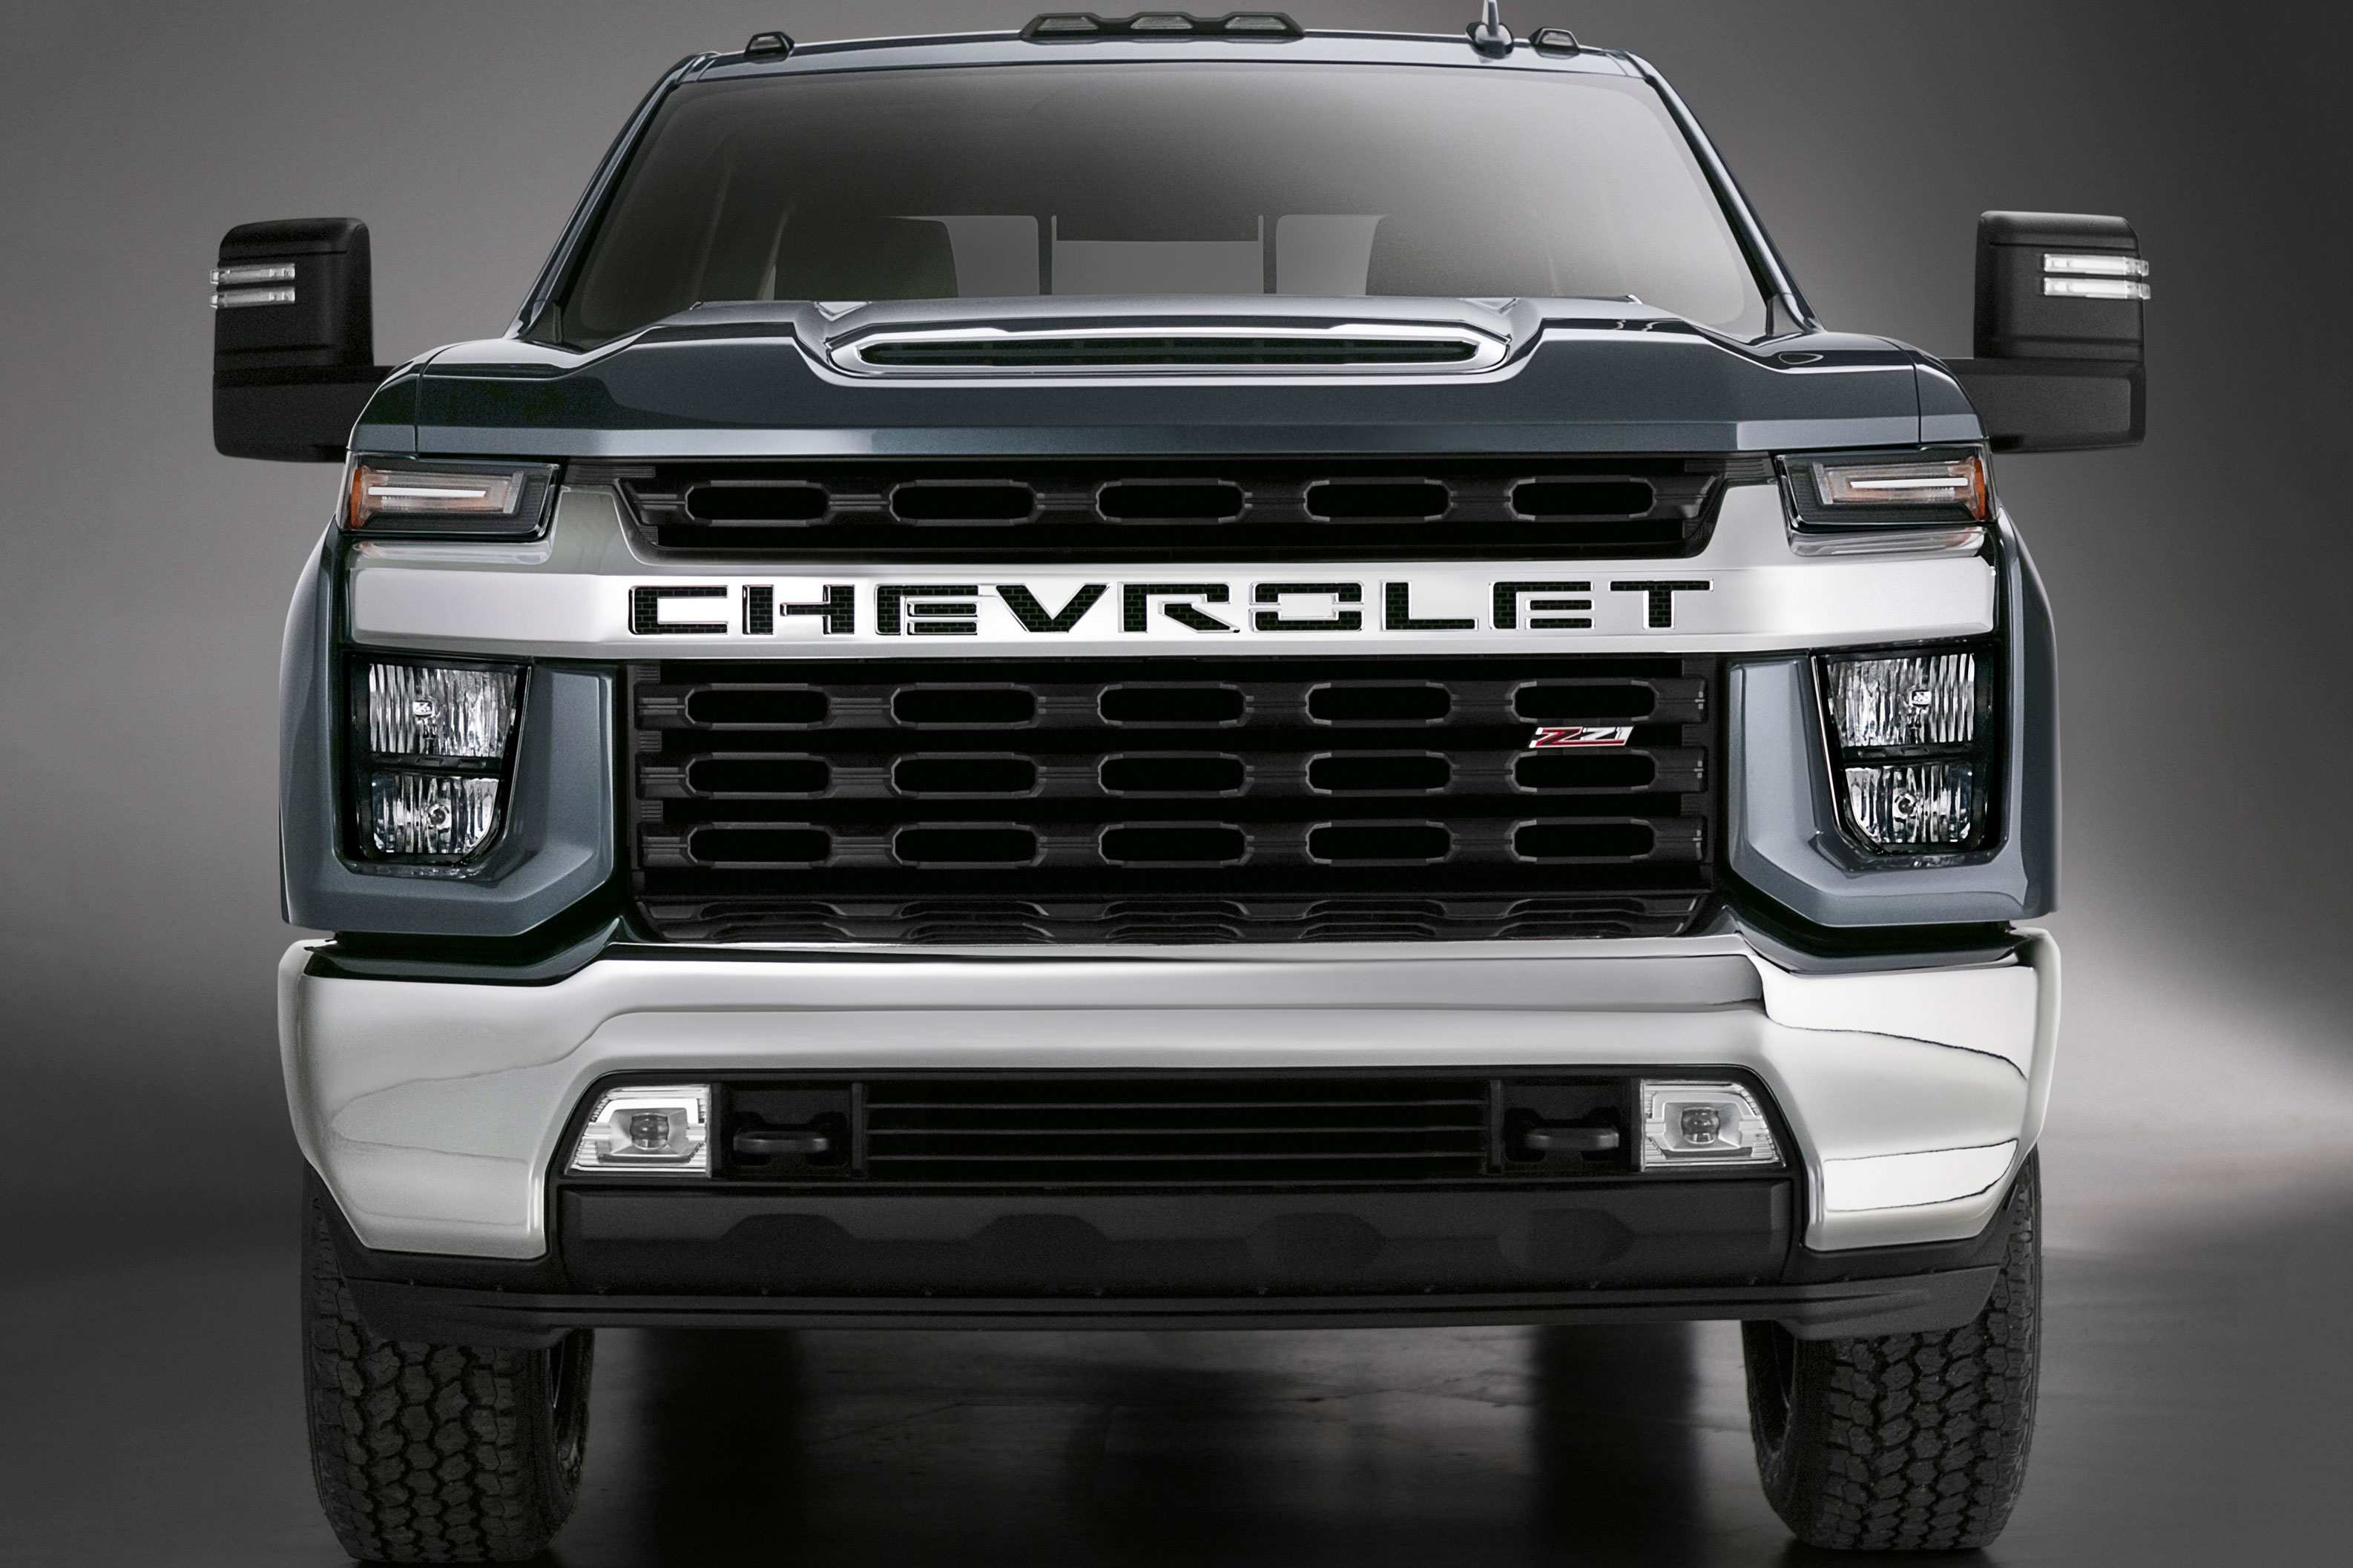 17 New Chevrolet Truck 2020 Release Date for Chevrolet Truck 2020